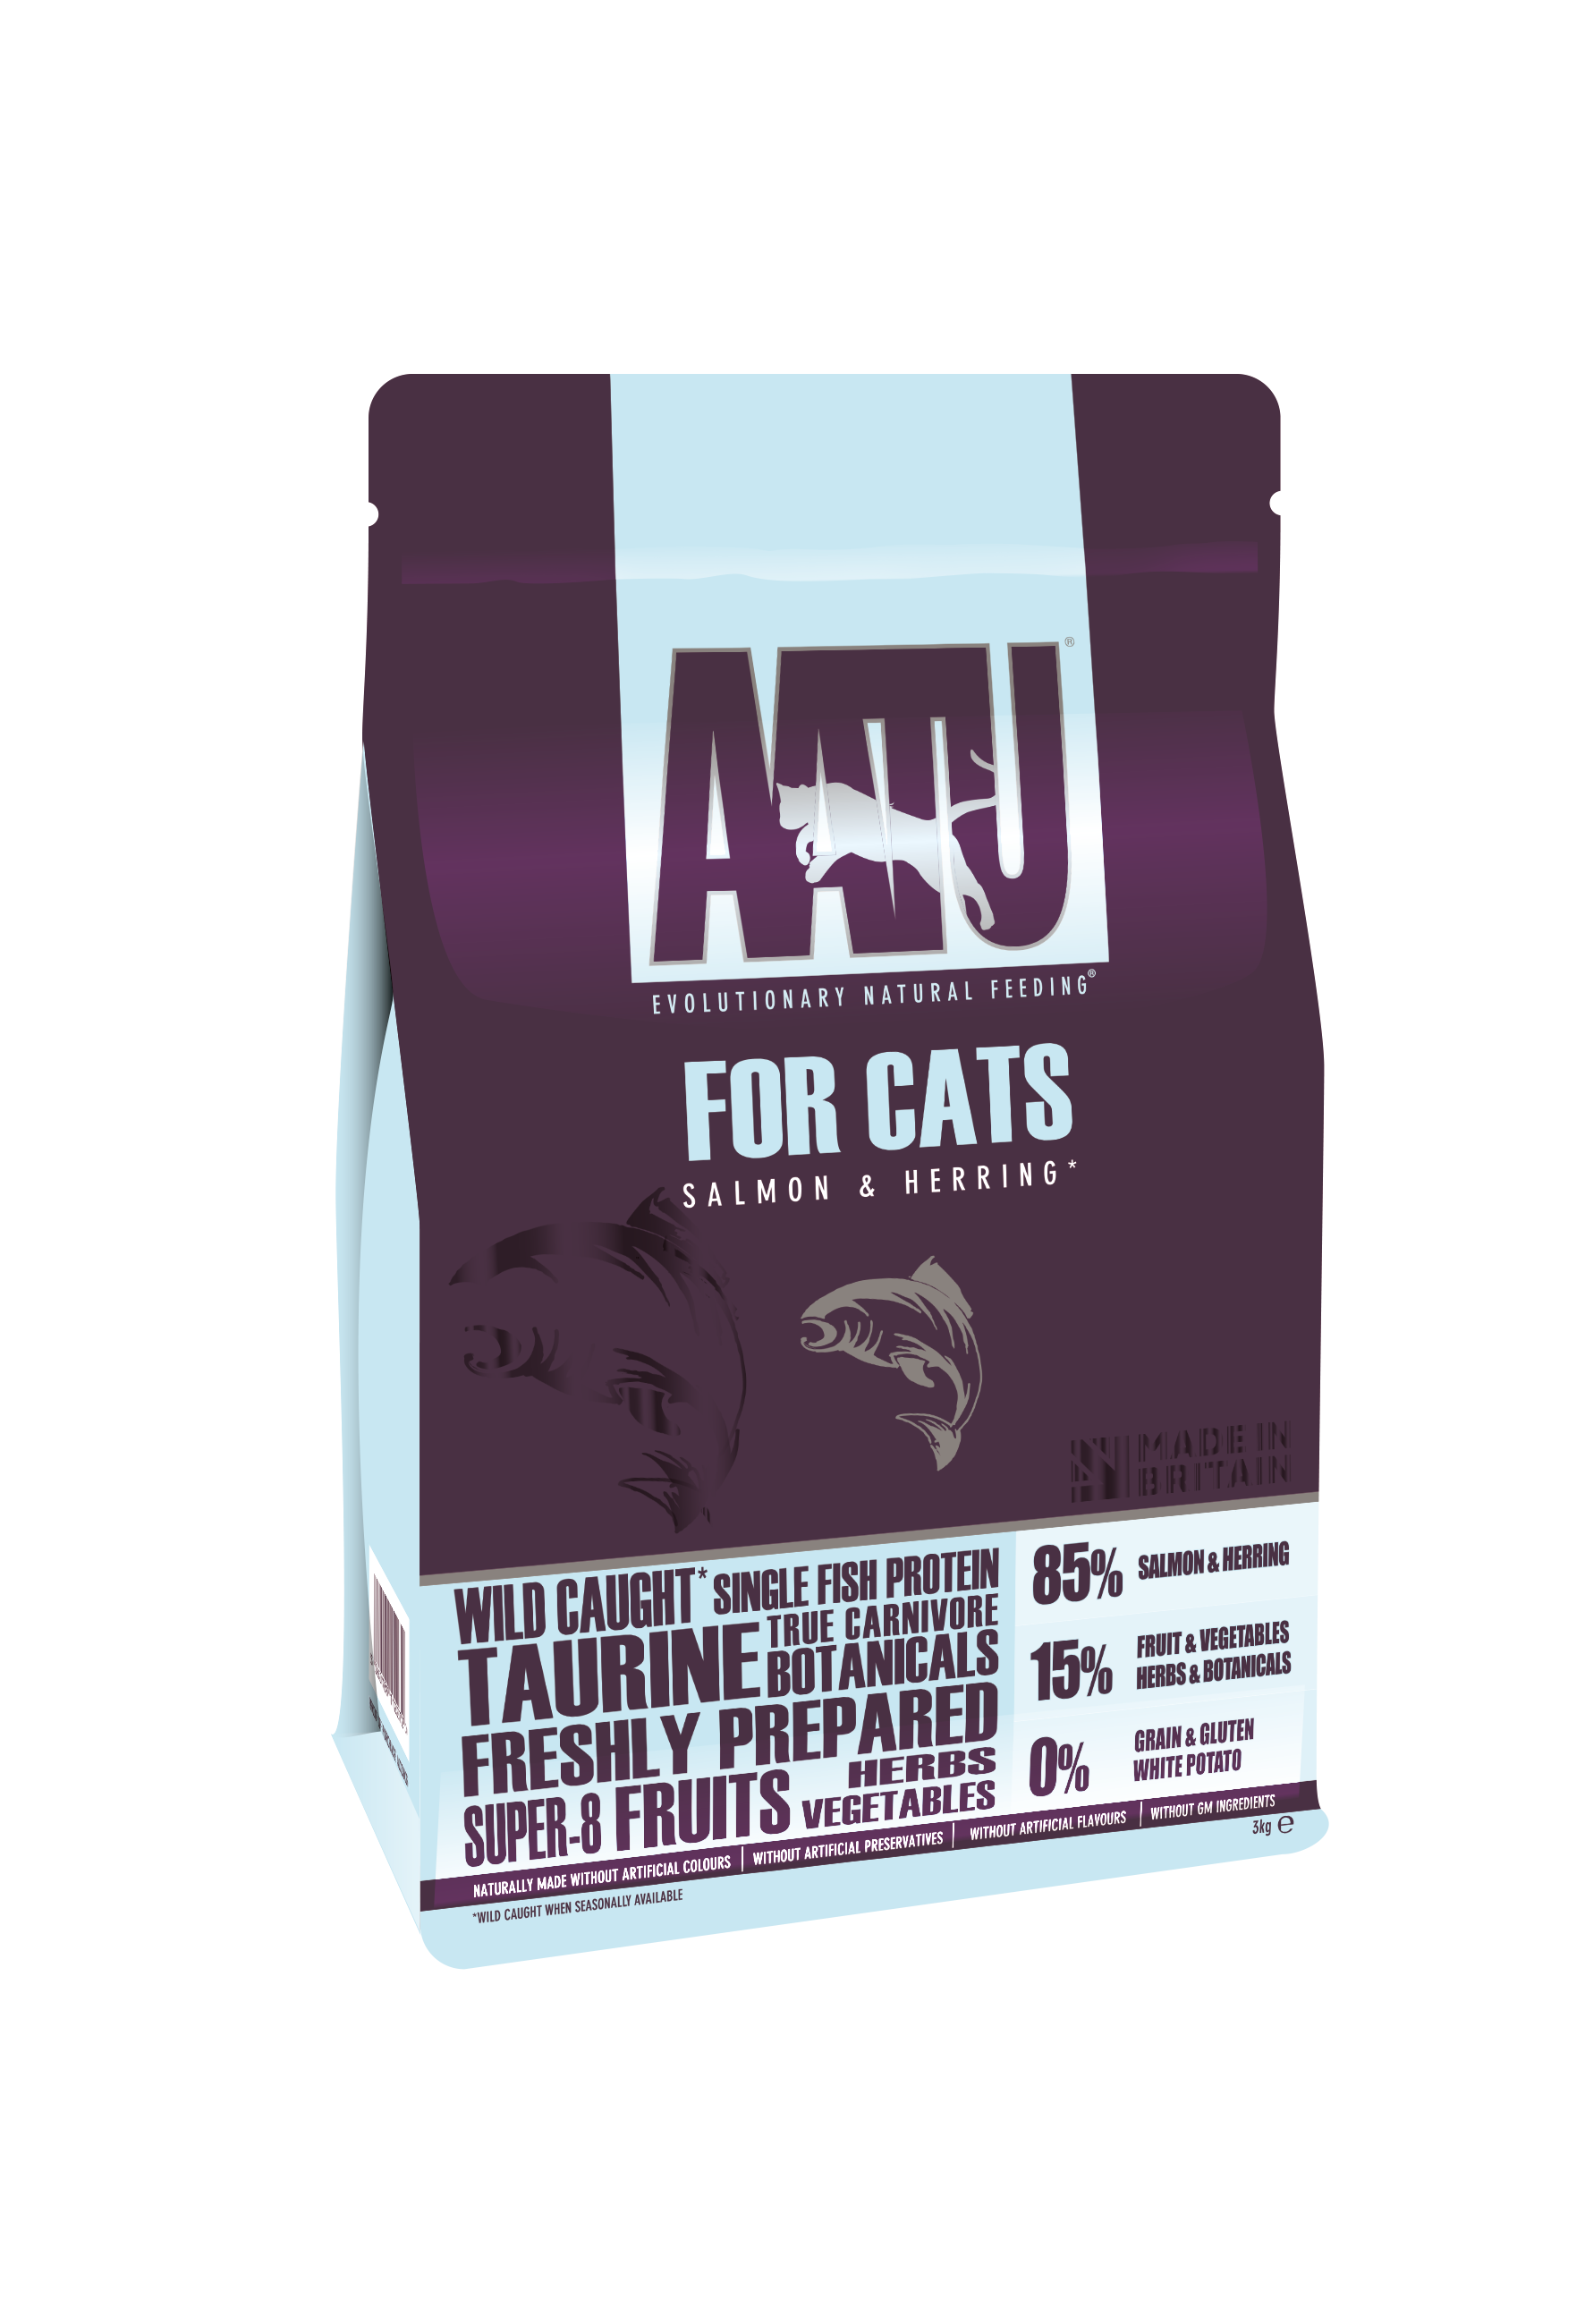 Grain Free Salmon herring cat food